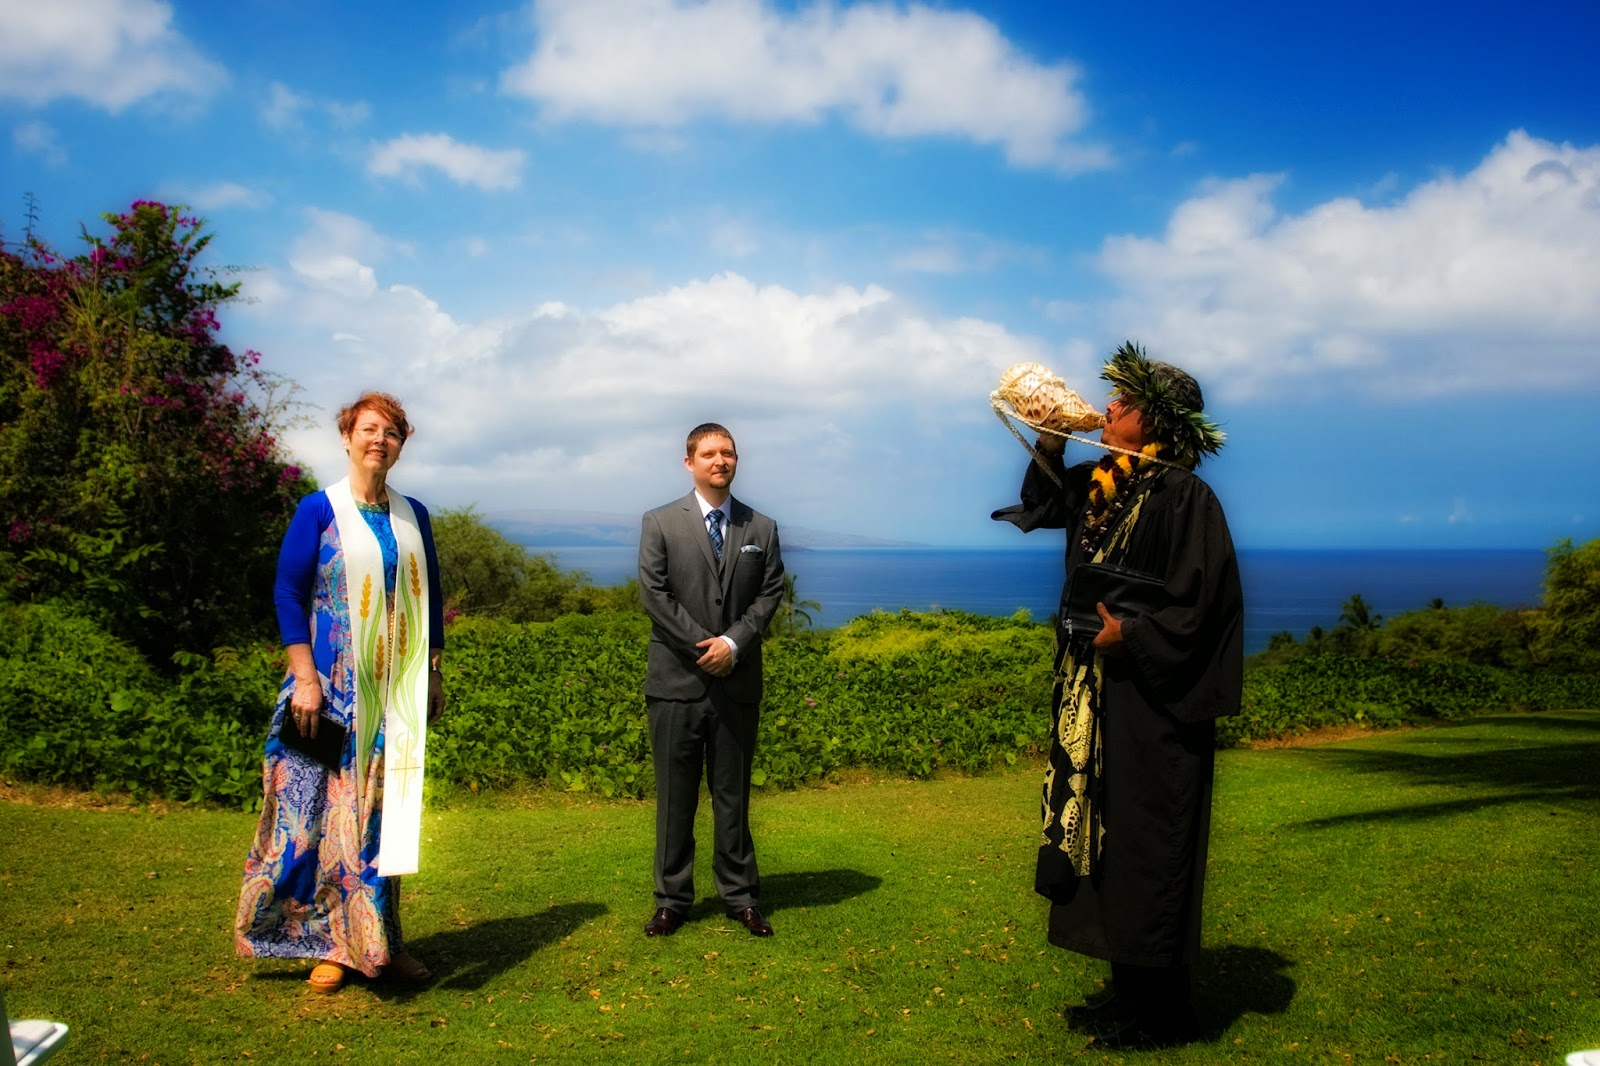 maui weddings, maui wedding planners, marry me maui